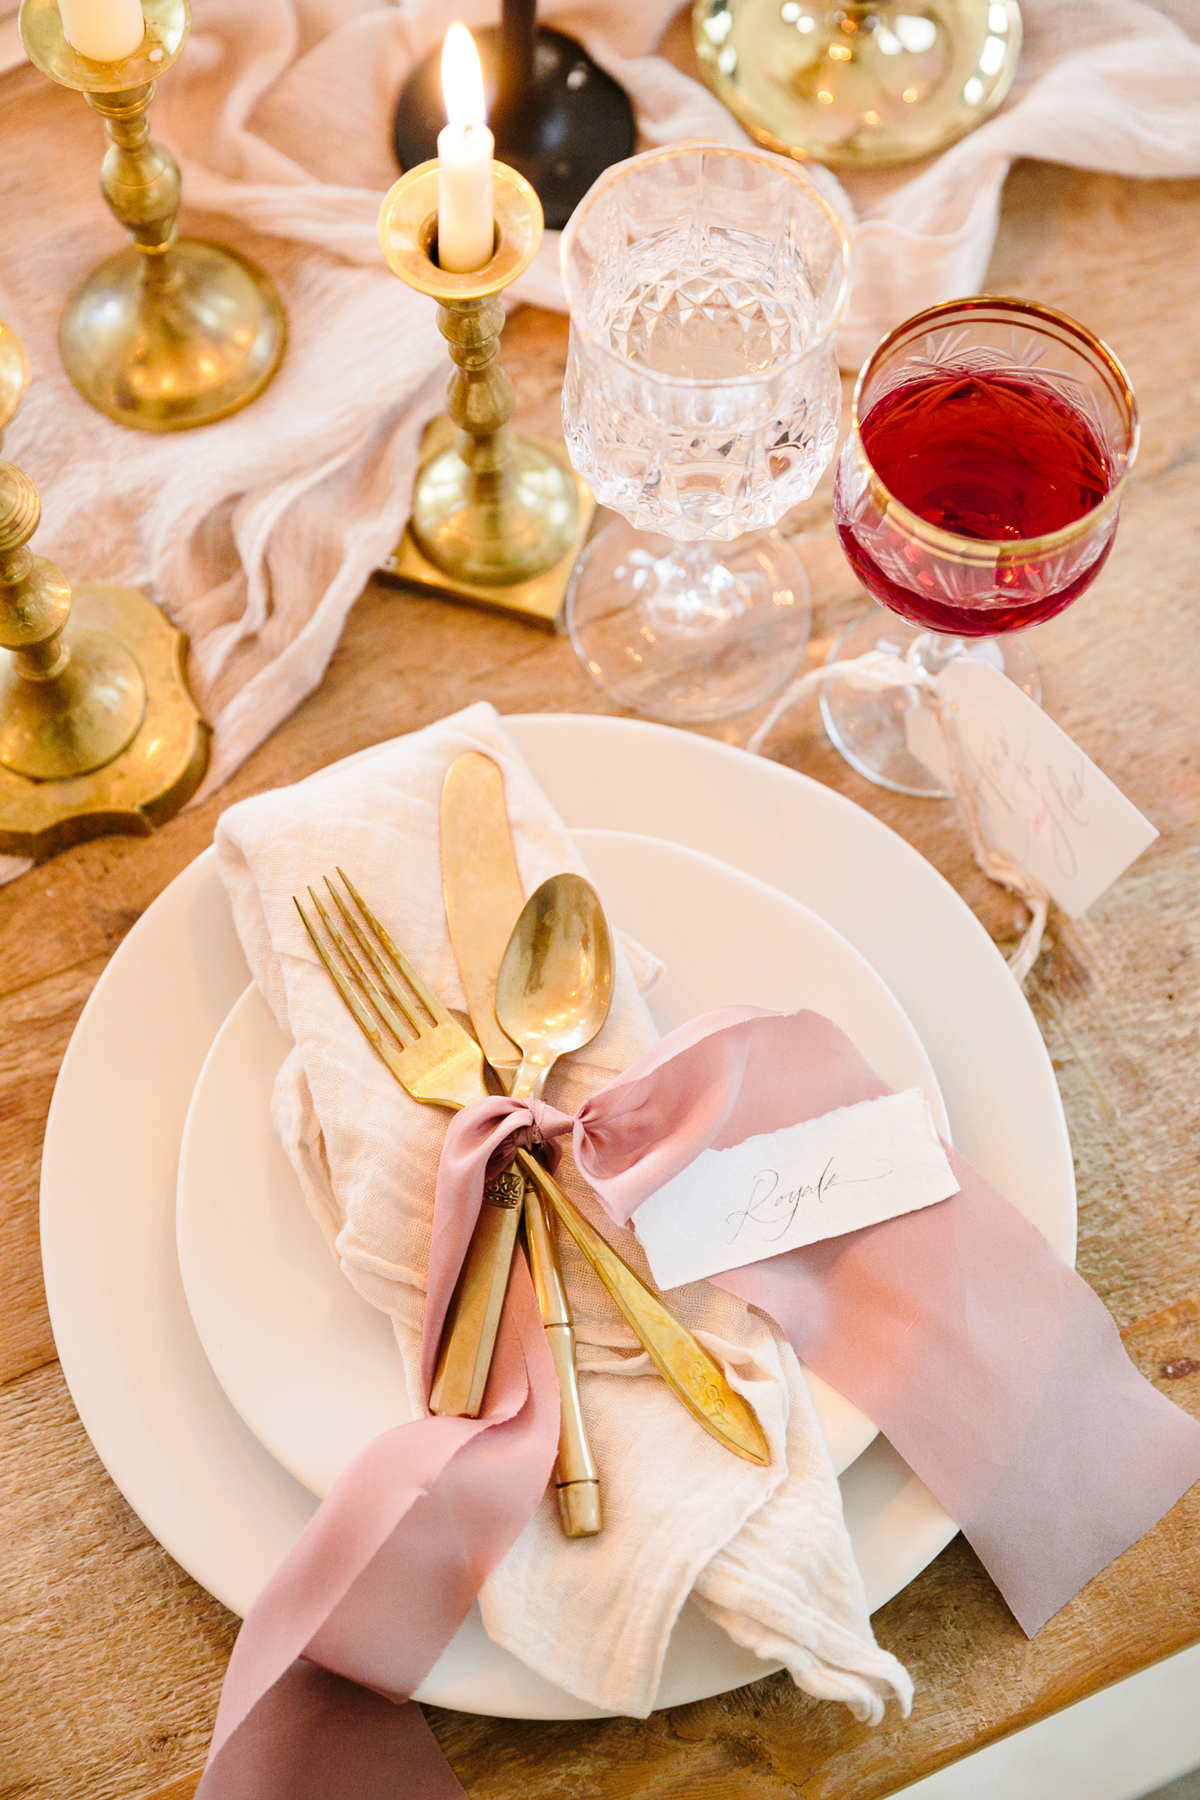 romeo and juliet valentines day party place setting with pink plates and gold silverware